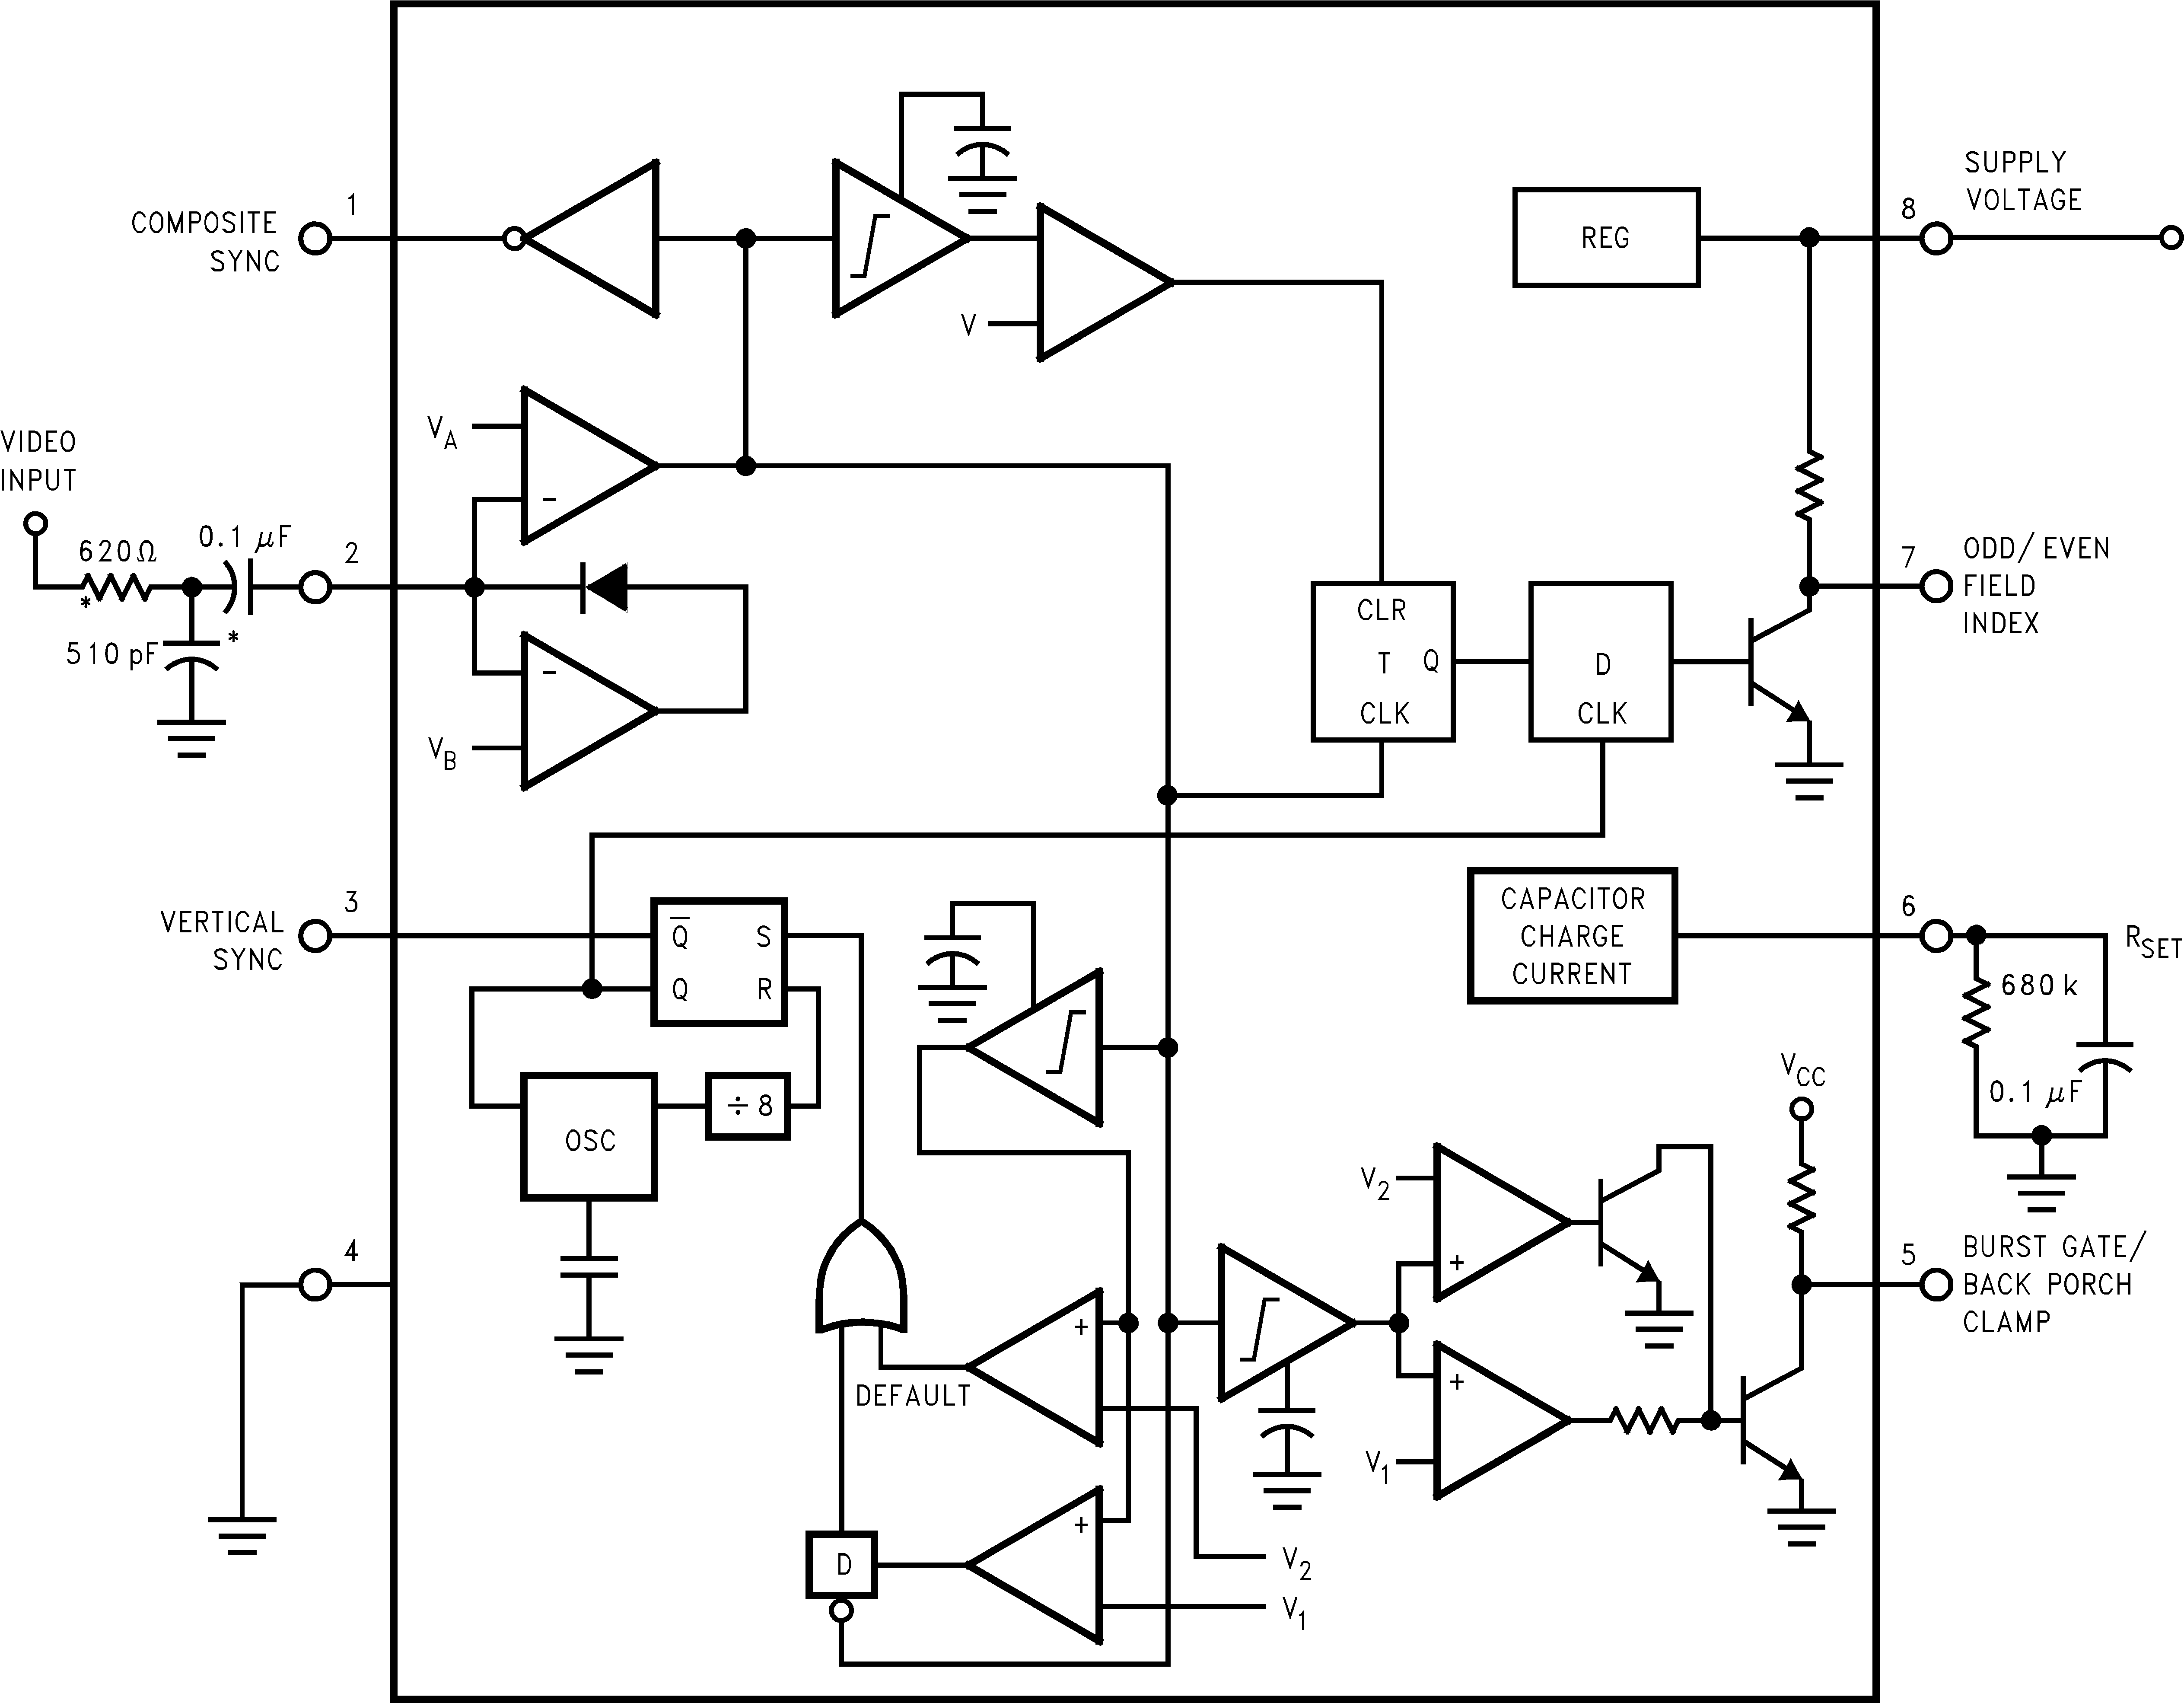 Sync Circuit Diagram Trusted Wiring Positive And Negative Voltage Converter Tradeofic Lm1881 Ti Com Cn Generator Synchronization